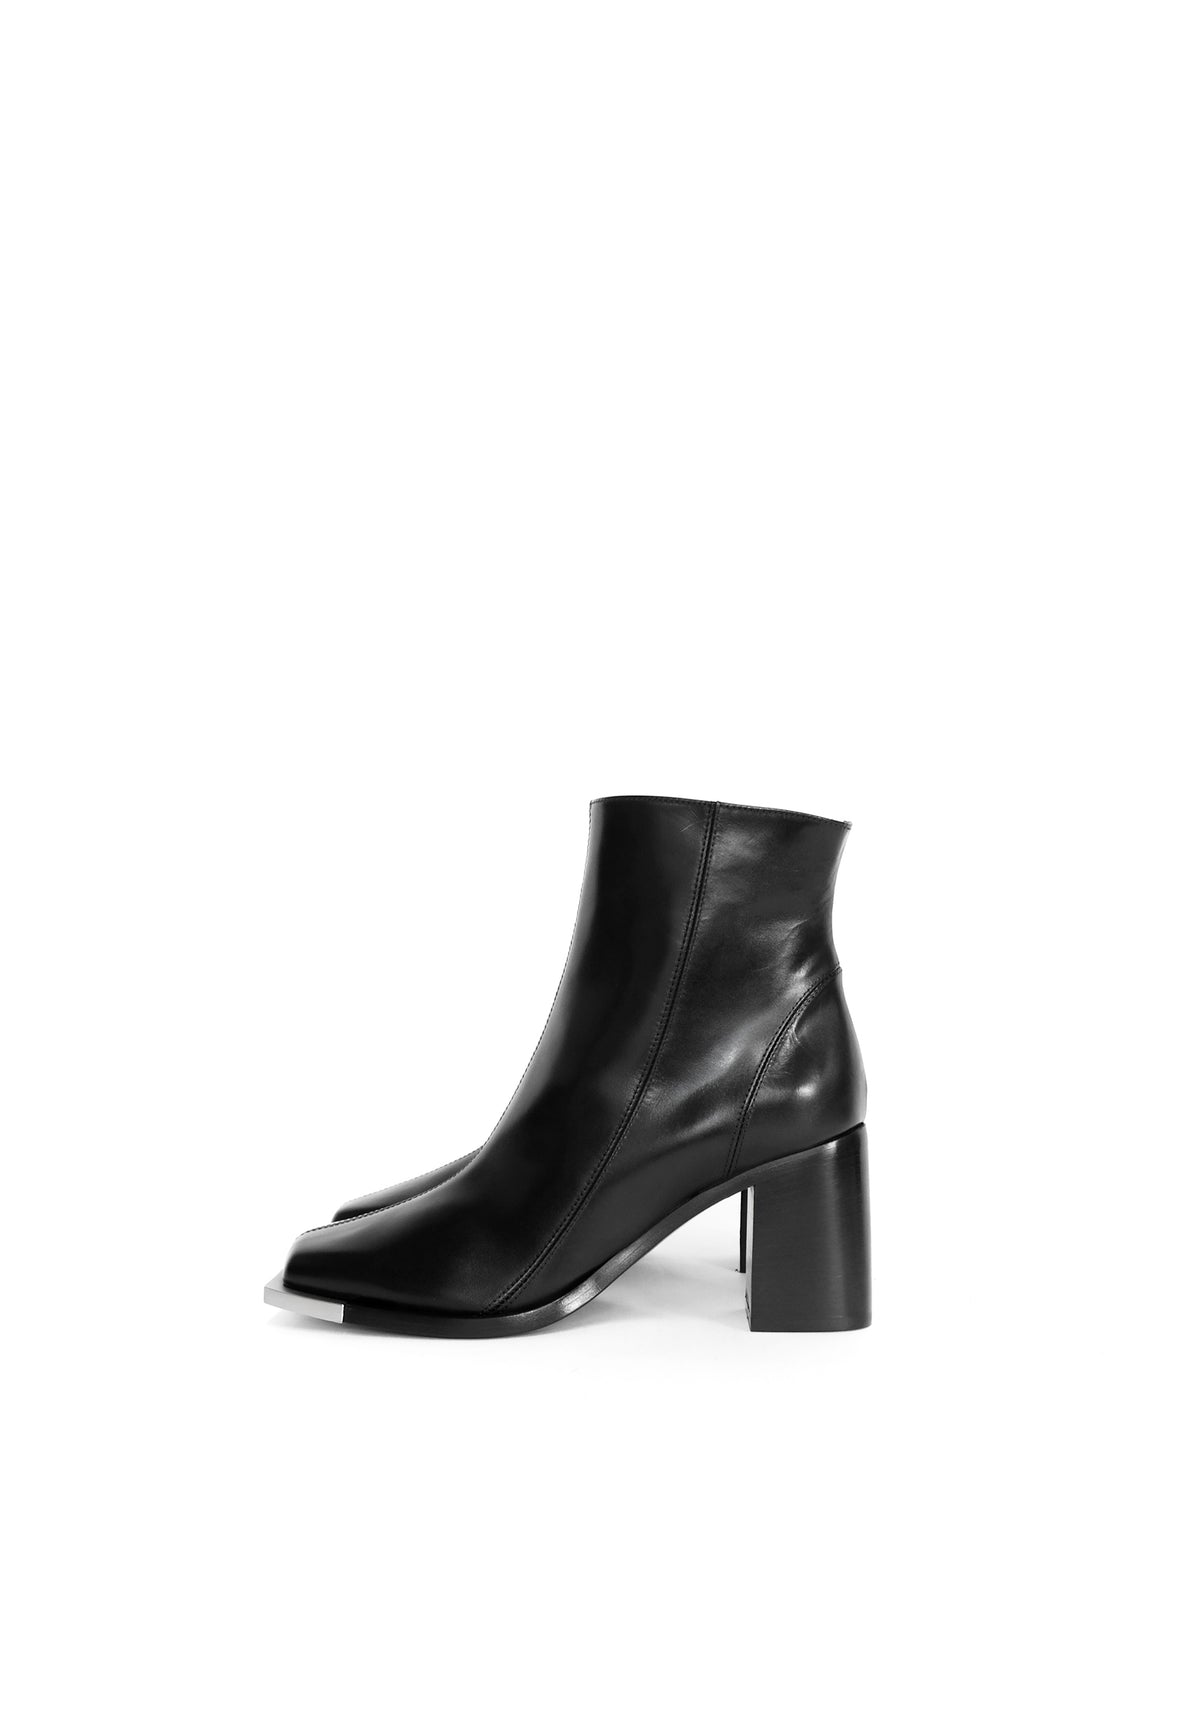 AVAILABLE NOW - BLACK EVERYDAY ANKLE BOOTS WITH METAL TIP